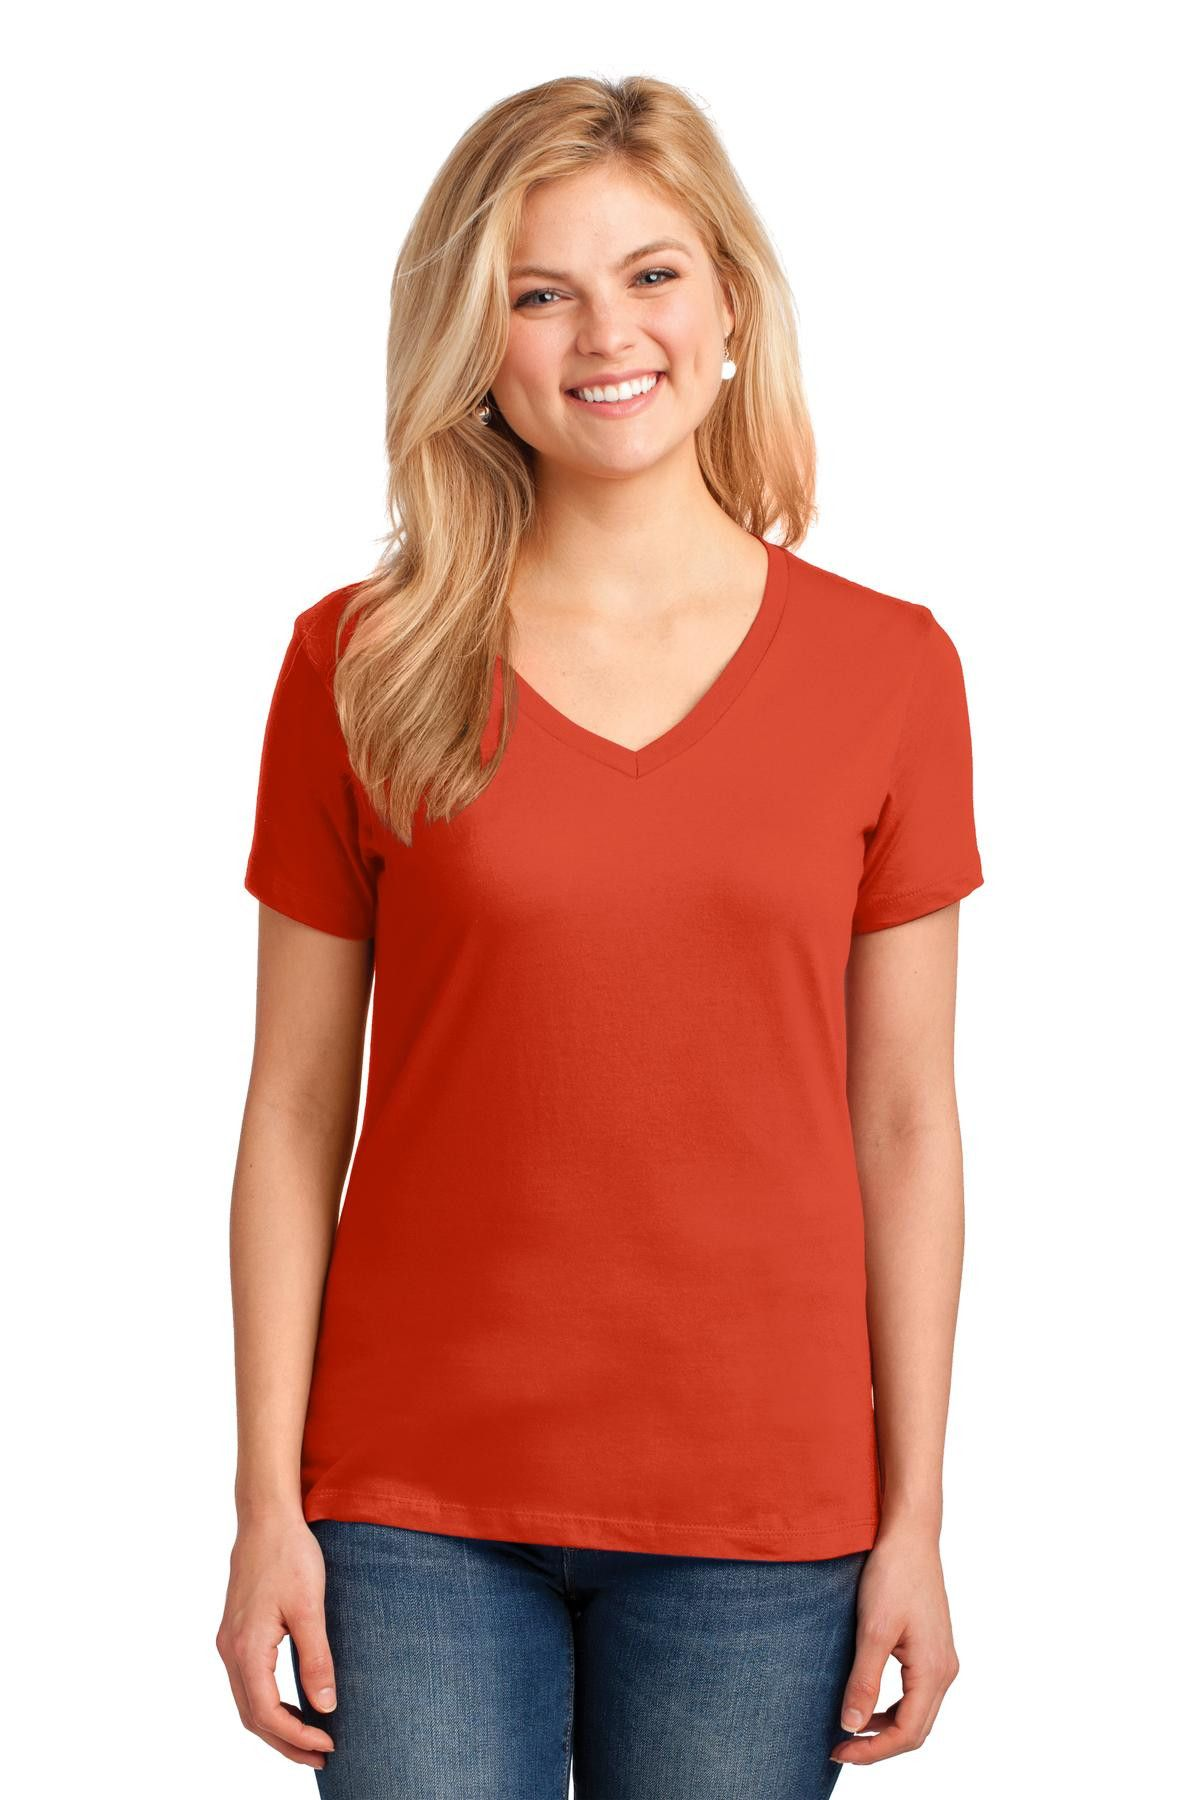 db43b67ccfc30 Port   Company Ladies 5.4-oz 100% Cotton V-Neck T-Shirt. LPC54V Orange